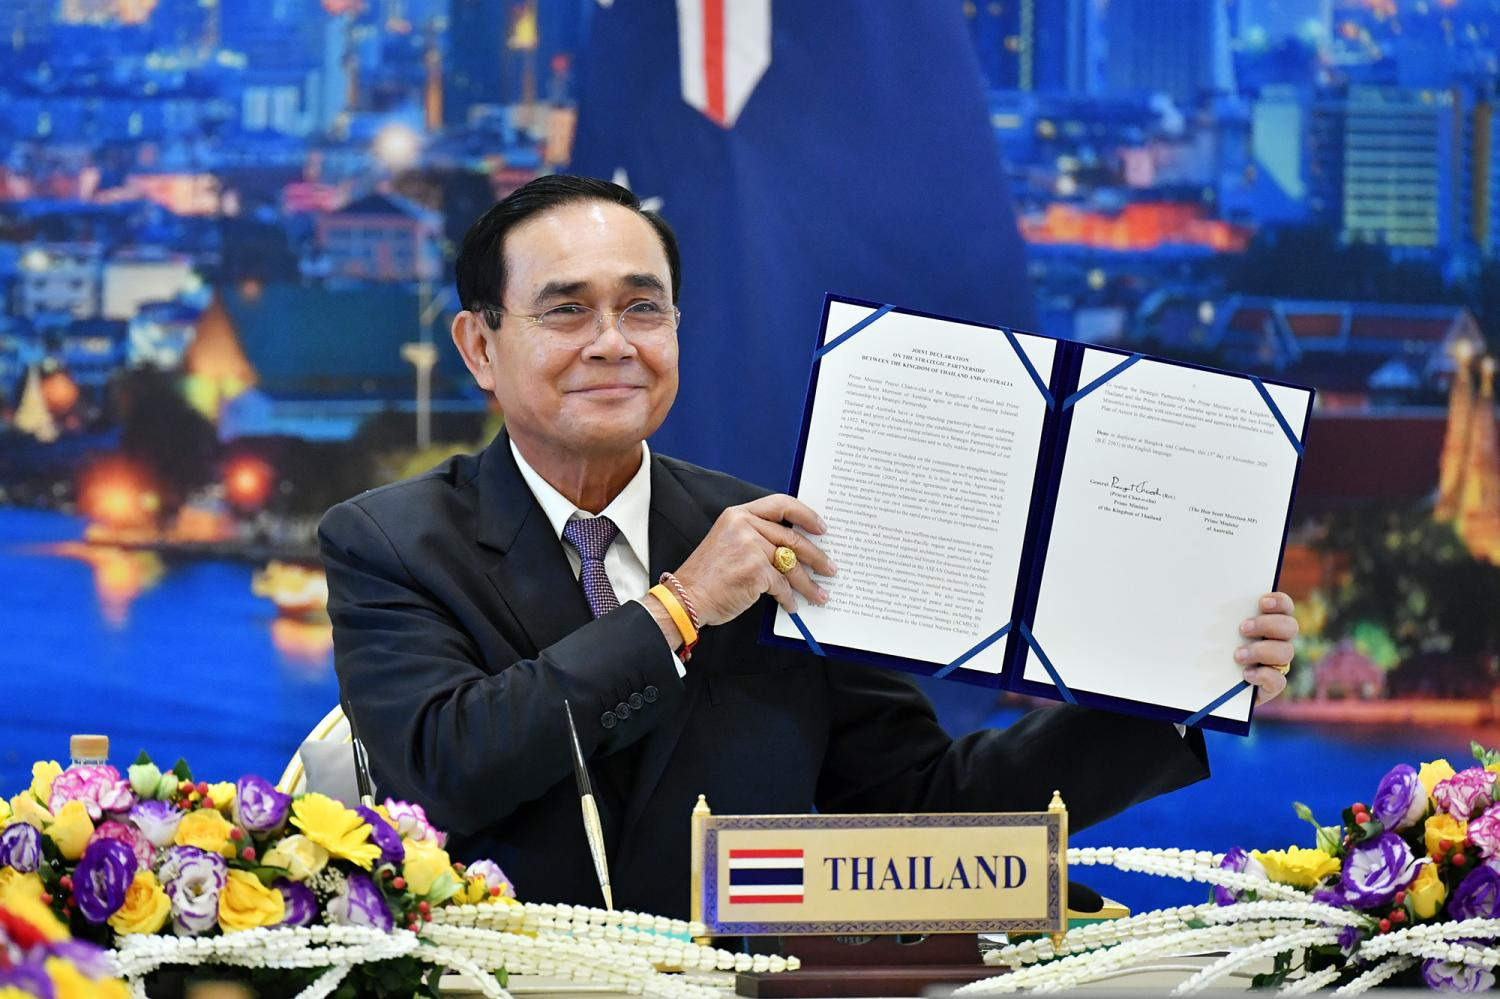 Prime Minister Prayut Chan-o-cha signs the Joint Declaration on the Strategic Partnership between Thailand and Australia.(Government House photo)